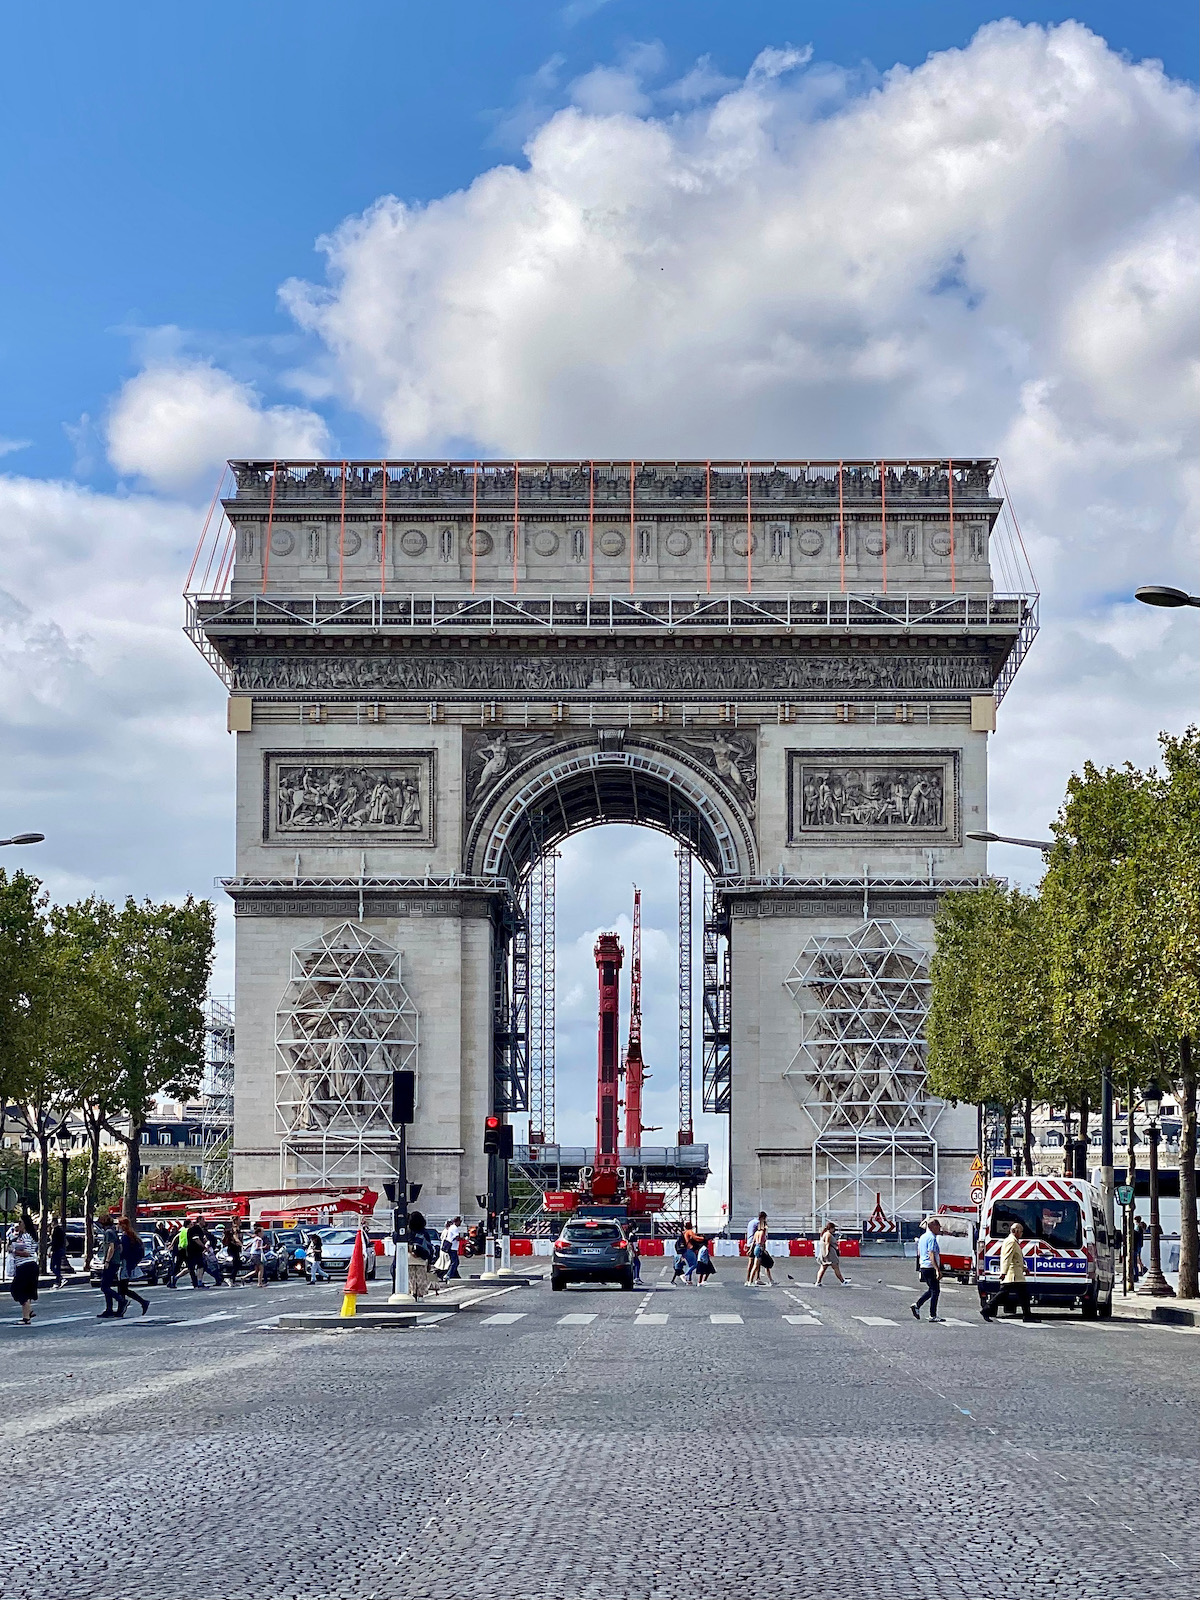 the arc de triomphe, wrapped project